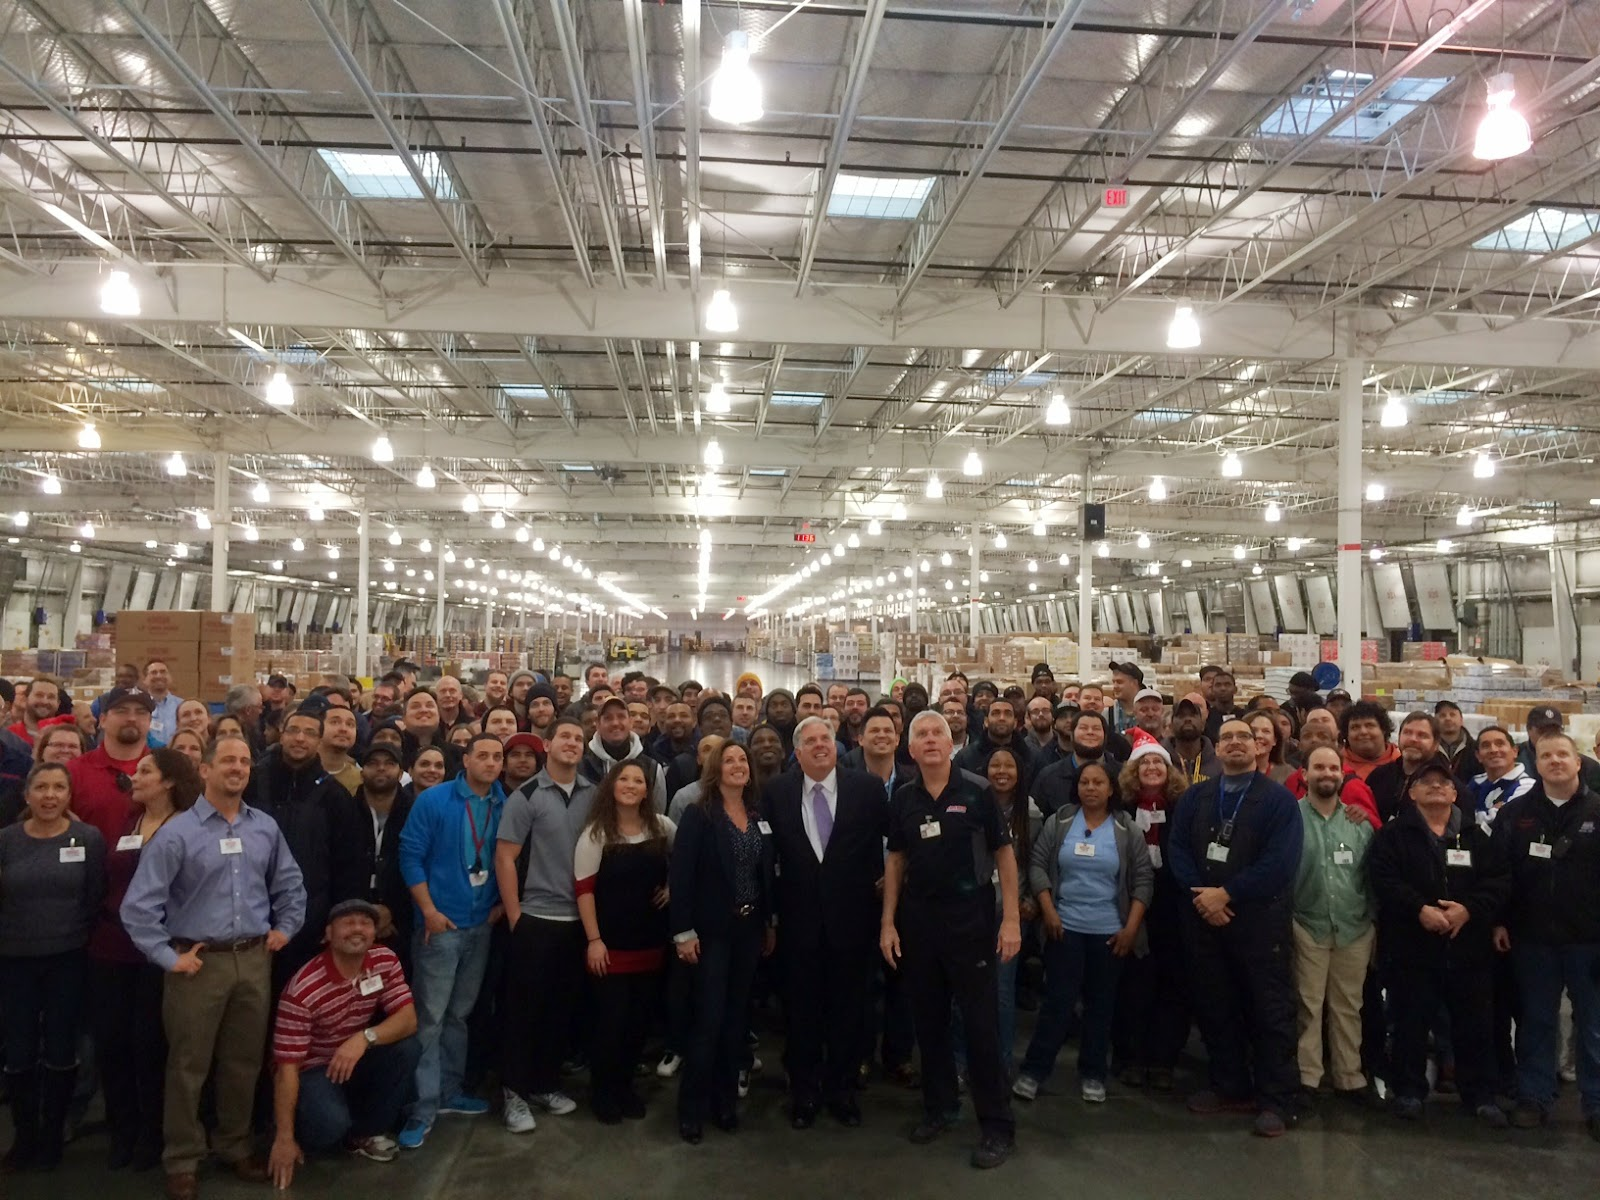 salisbury news  monrovia md governor elect hogan today ed a costco whole regional distribution center in frederick county for a meeting national and local